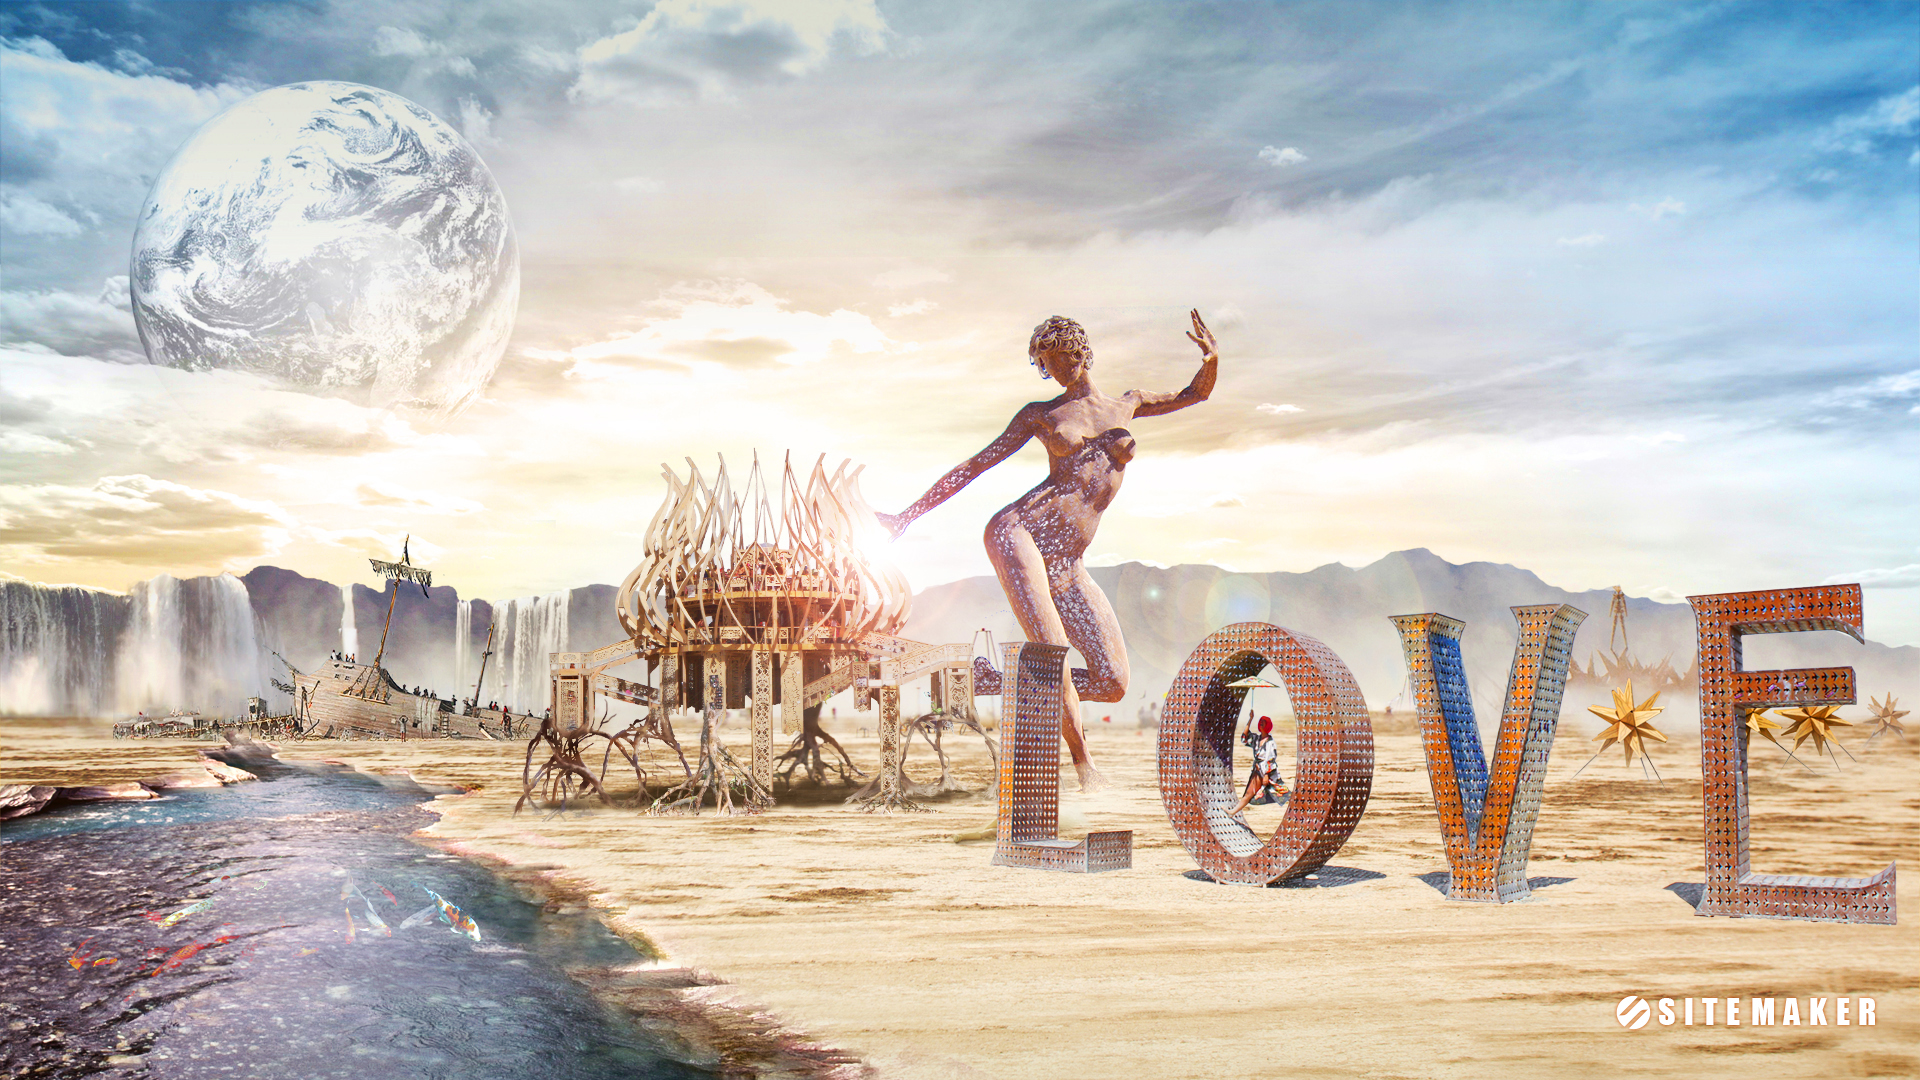 Burning Man Wallpaper Wallpapersafari